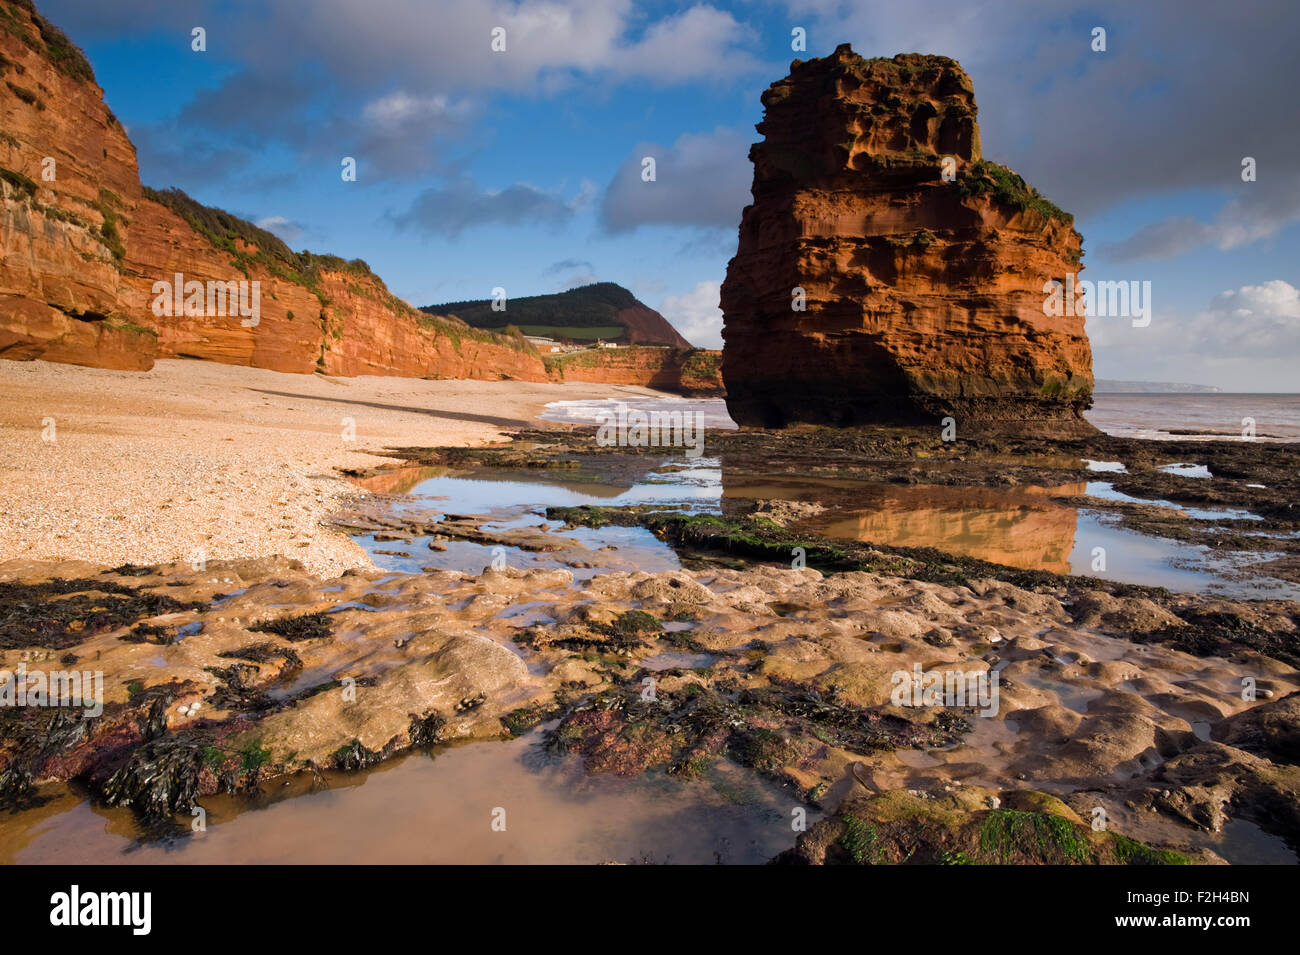 View of the red sandstone sea stacks at Ladram Bay near Sidmouth on Devon's Jurassic Coast, England, UK - Stock Image